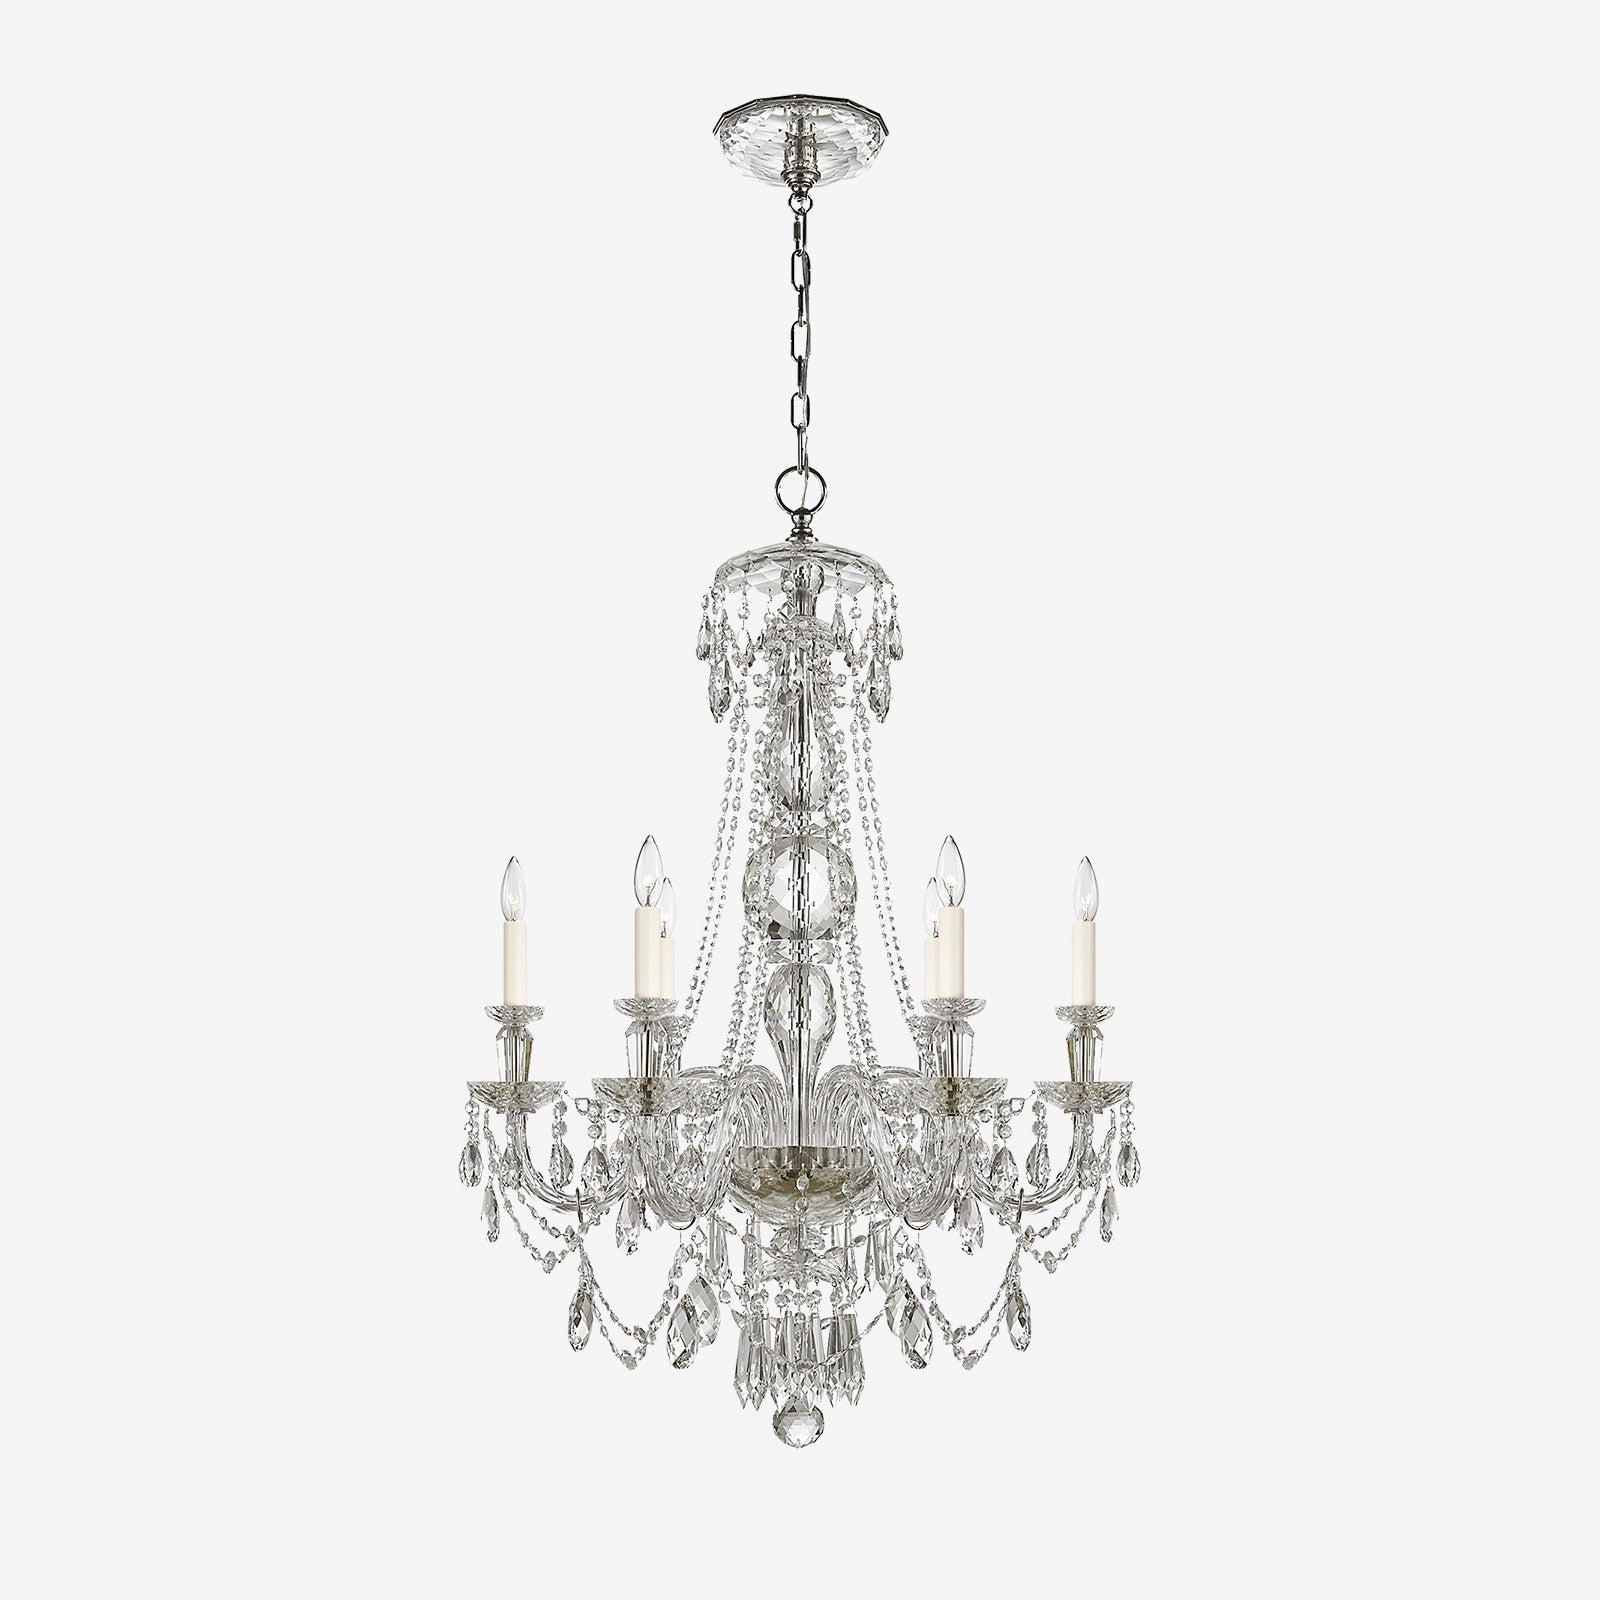 Daniela Medium Chandelier e Tier and Two Tier – The Montauk